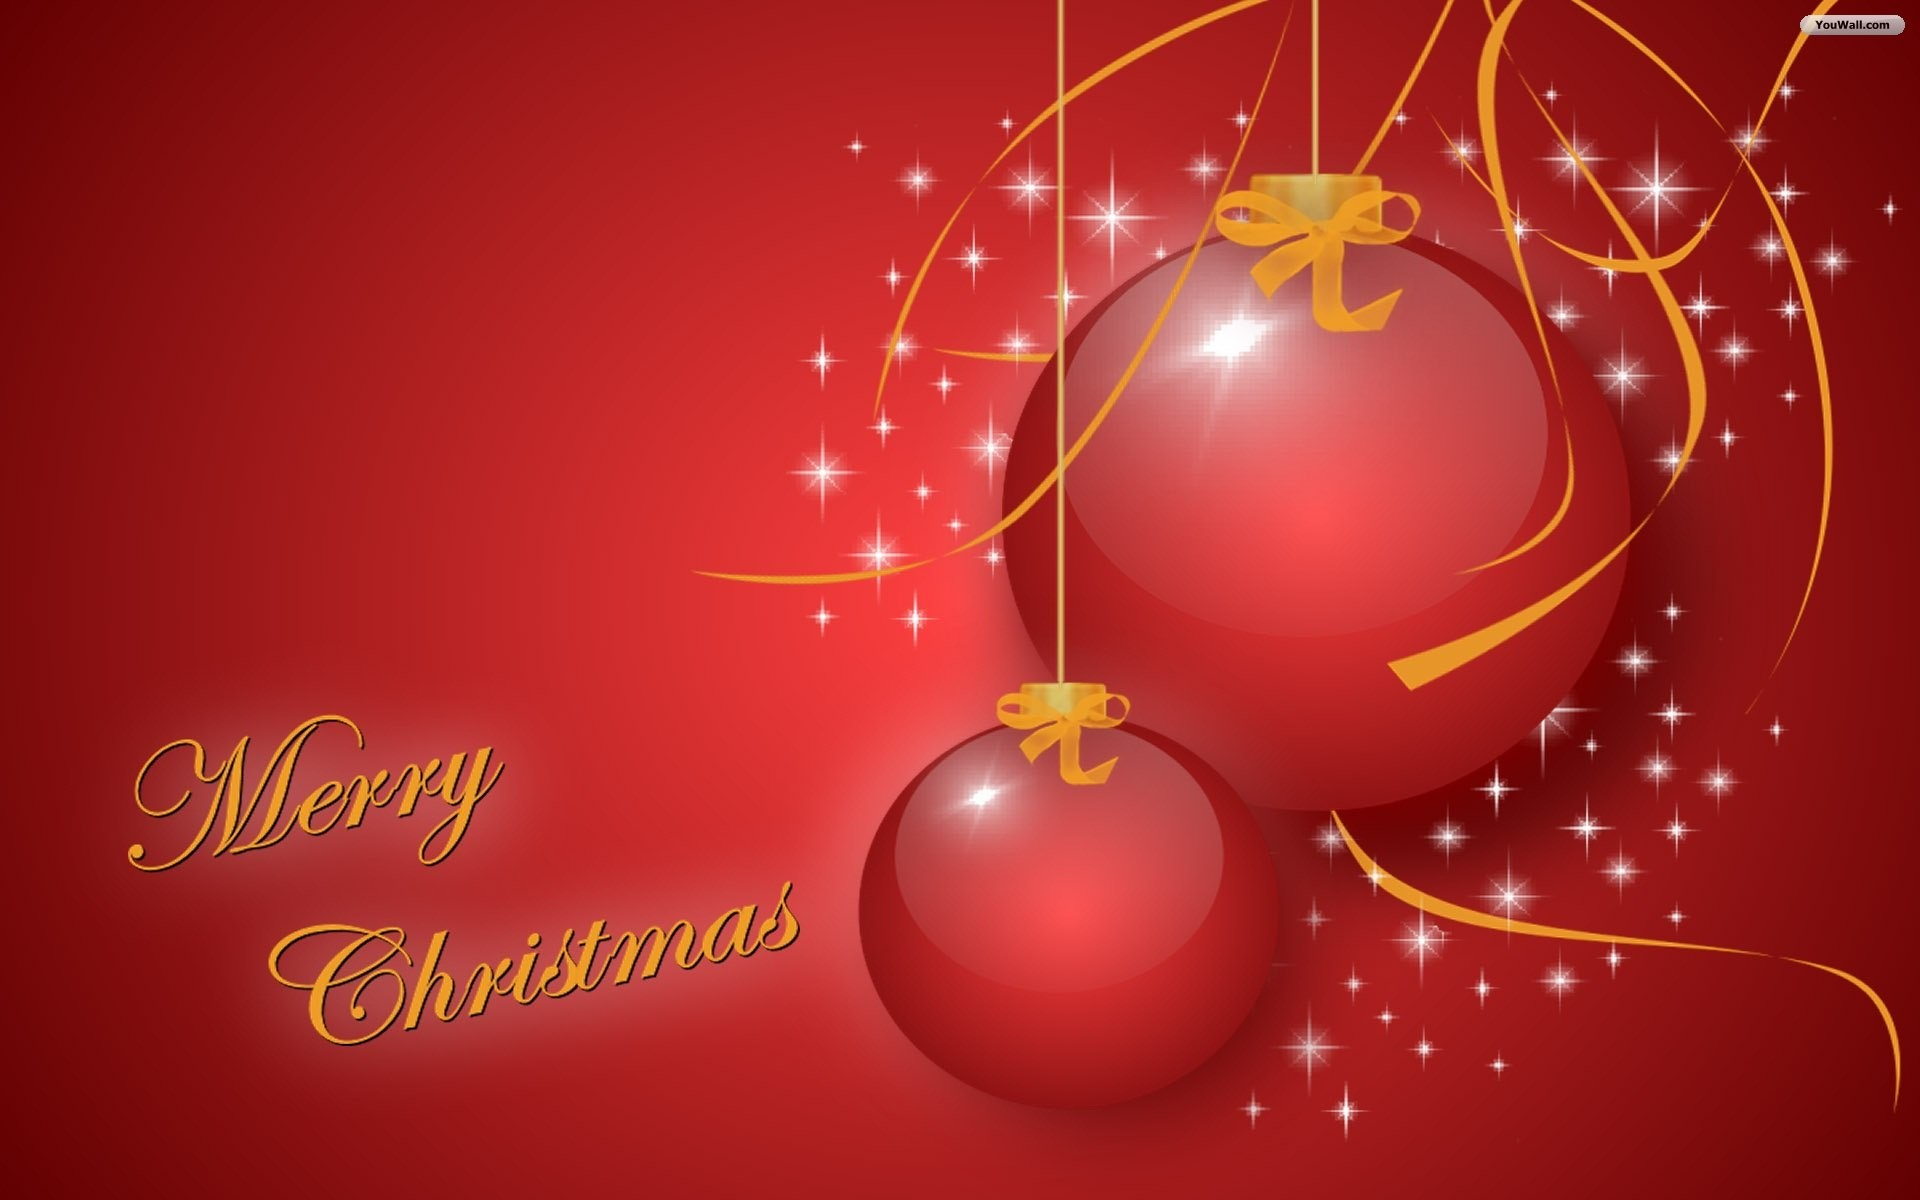 Merry Christmas 2 Wallpapers | HD Wallpapers